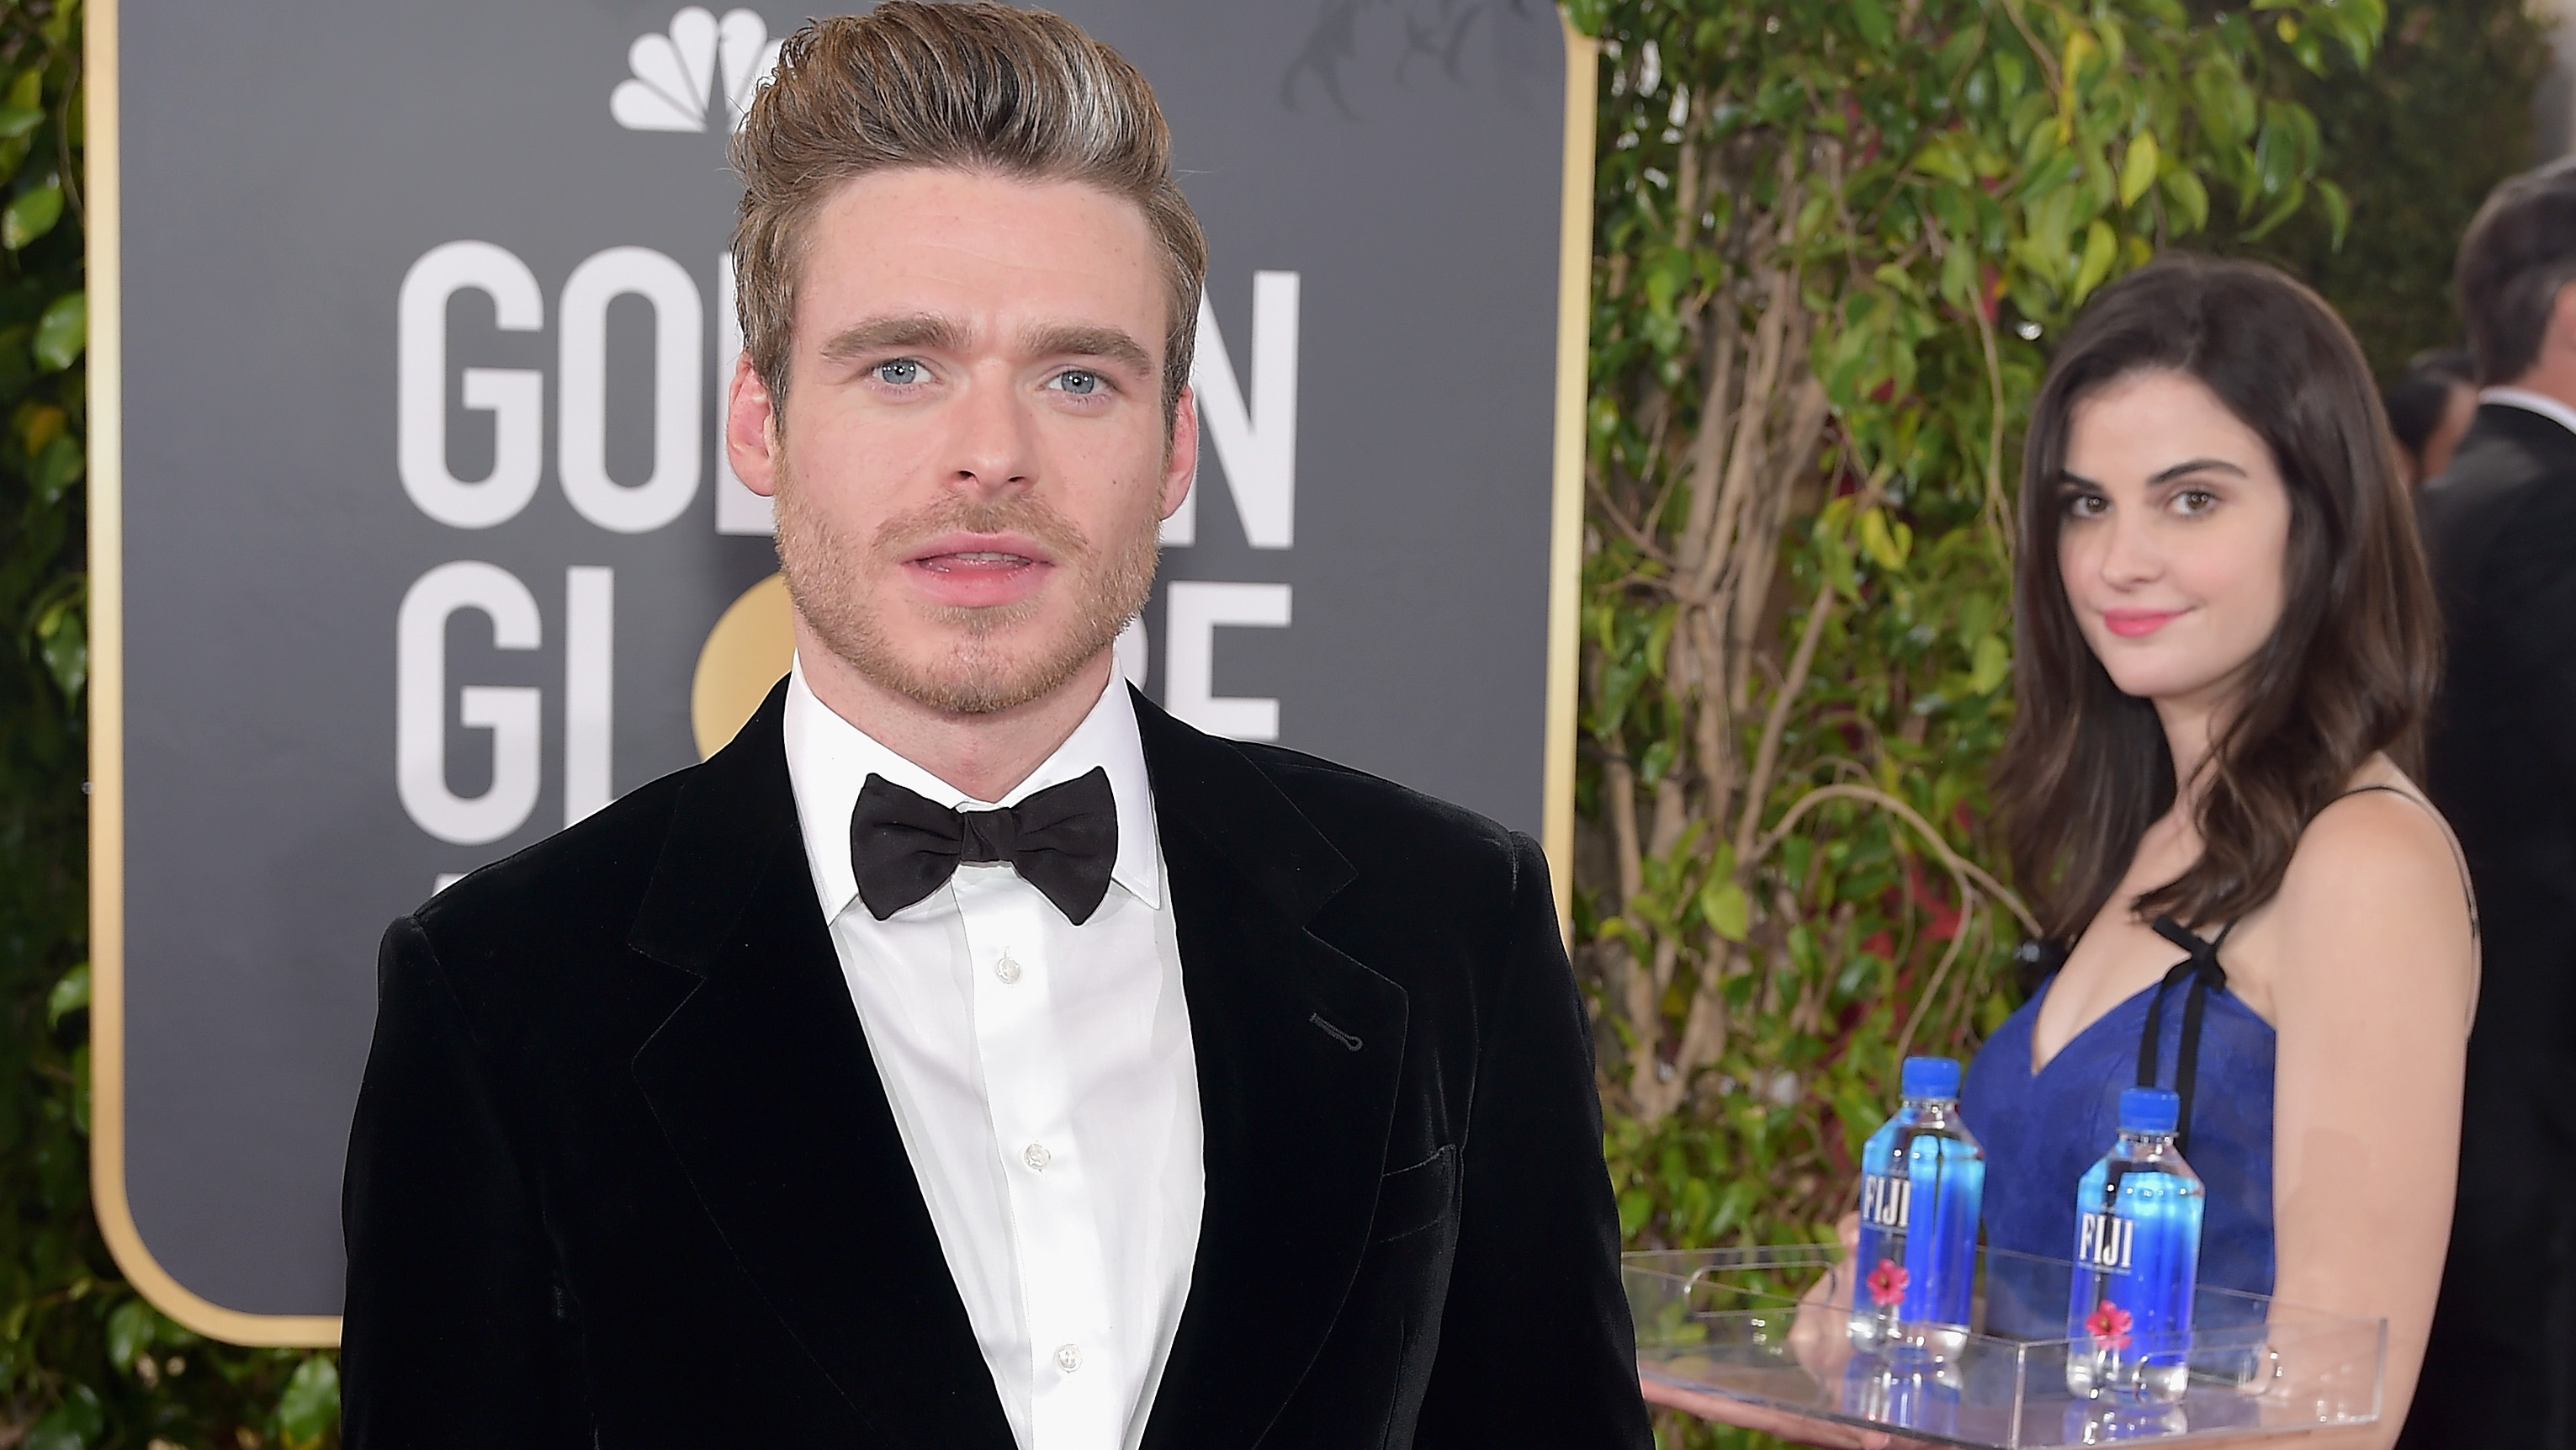 The Fiji Water Girl Stole The Golden Globes Red Carpet Paper